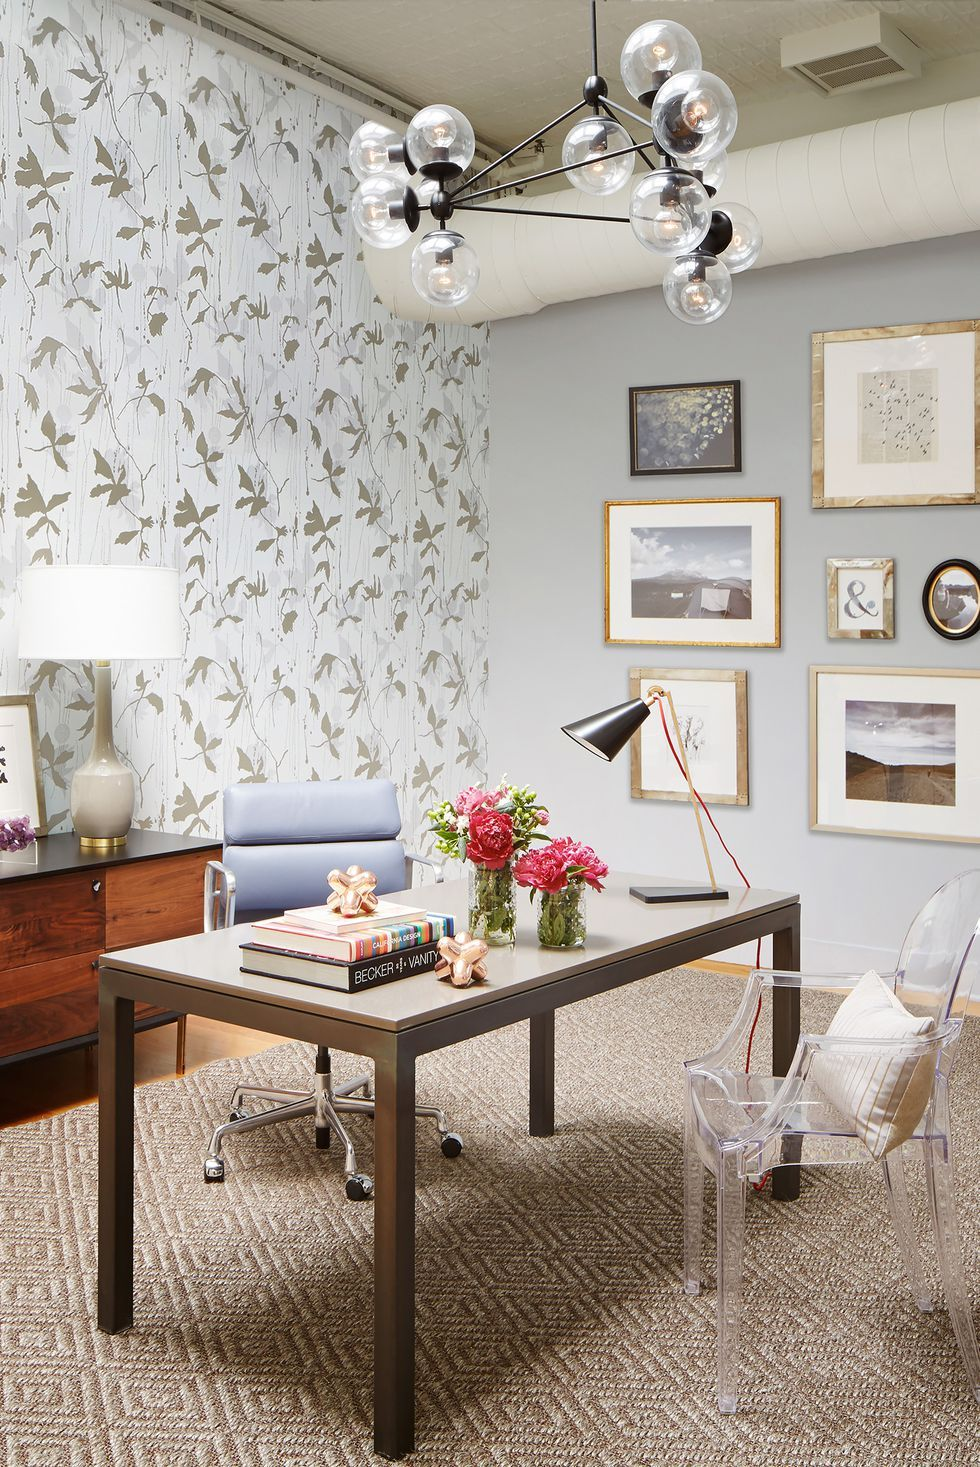 Office Decorating Ideas Blog A leafy wallpaper brings bohemian elegance to an urban loft office.